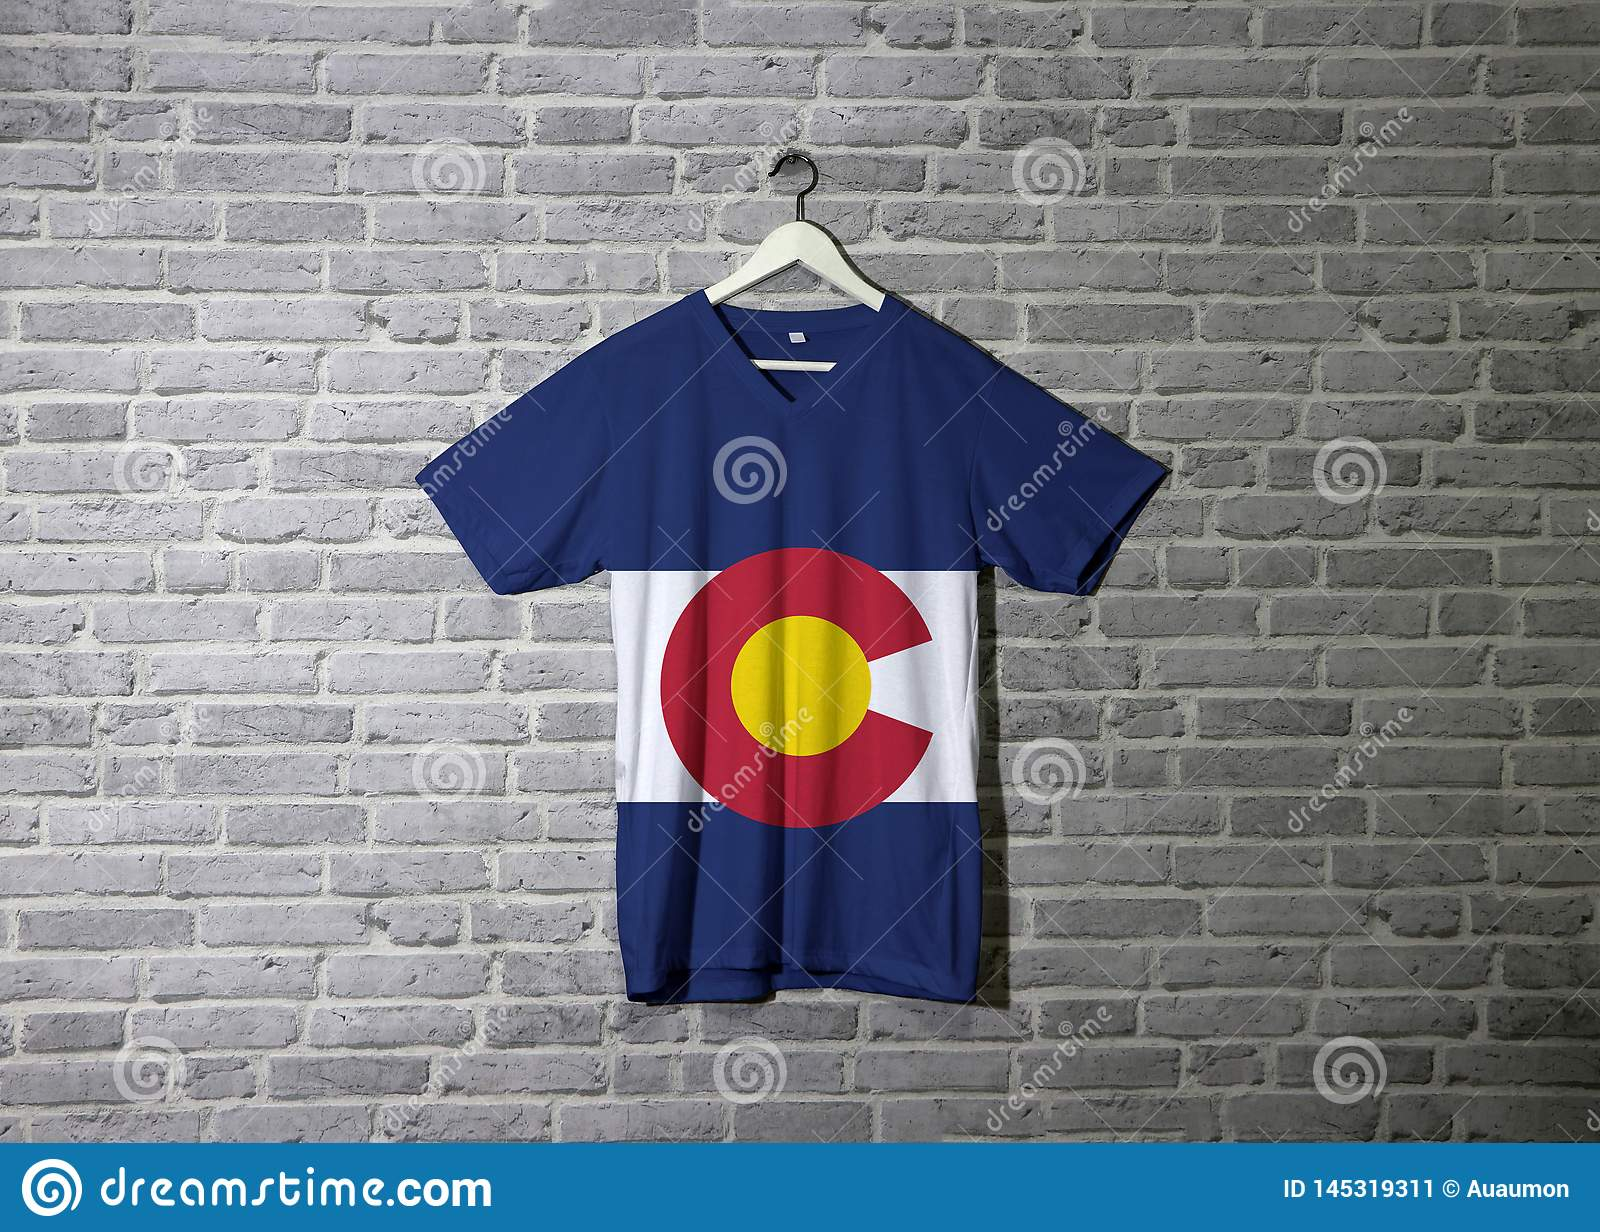 Colorado flag on shirt and hanging on the wall with brick pattern wallpaper. The states of America